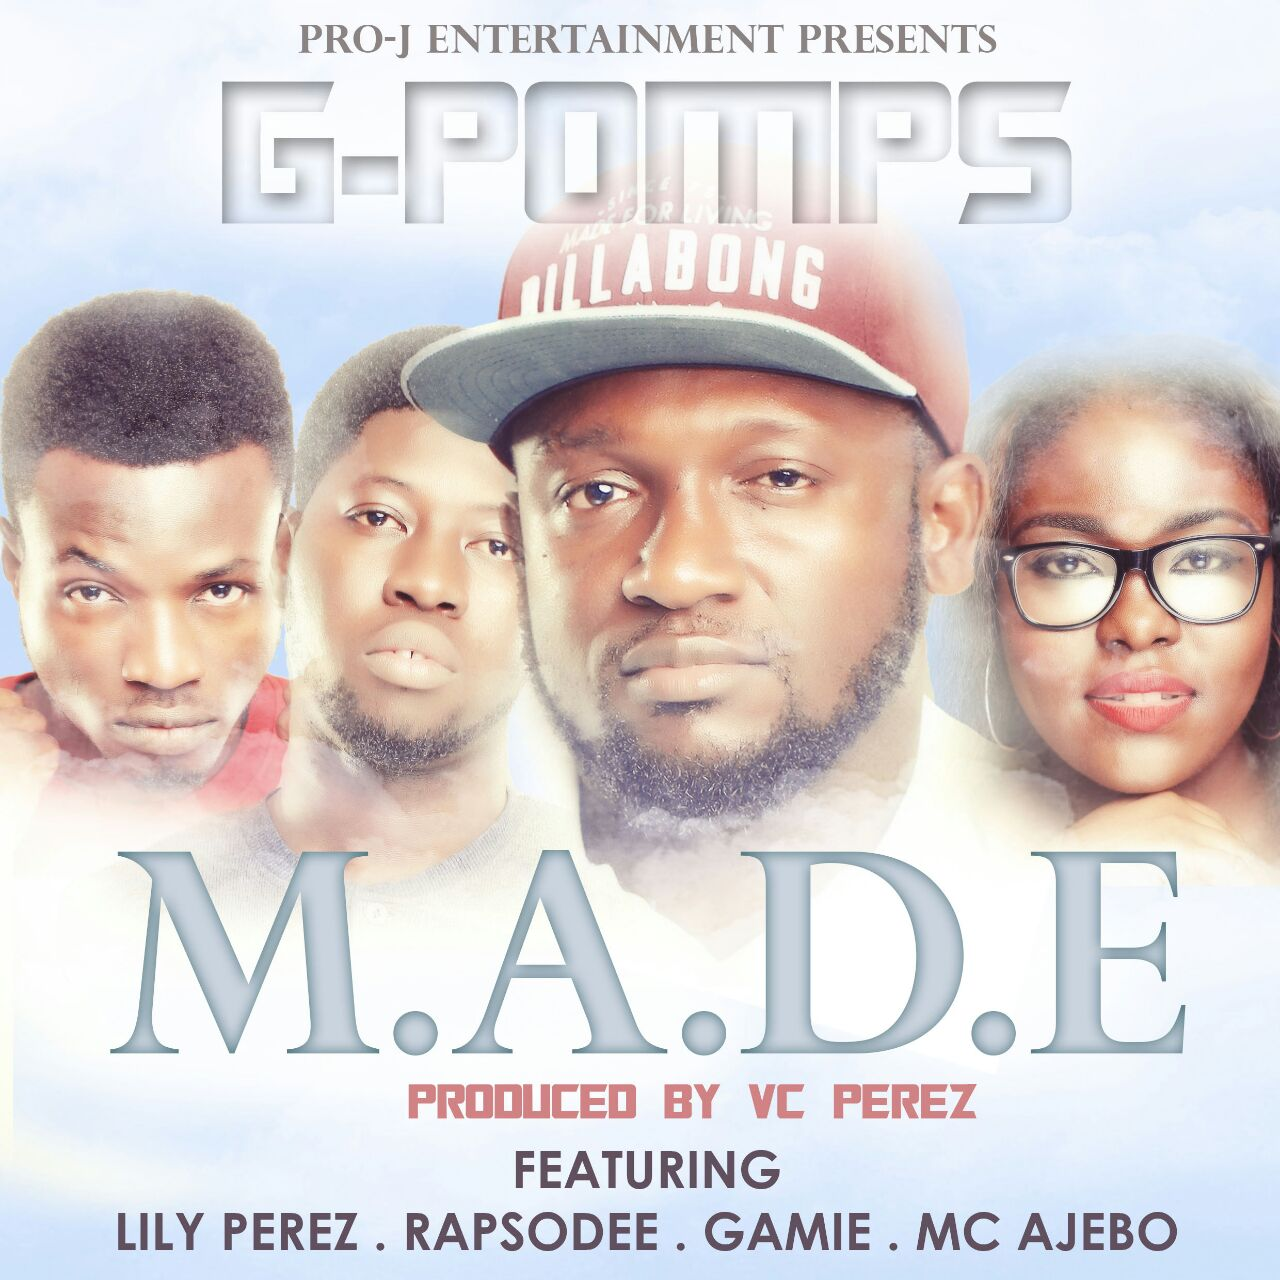 M.A.D.E by G-Pomps [@GreatPomps] ft Gameman [@Gamemanmusic] ,Rhapsodee [@Rapsodee] and Lily Perez [@LILYPrz]